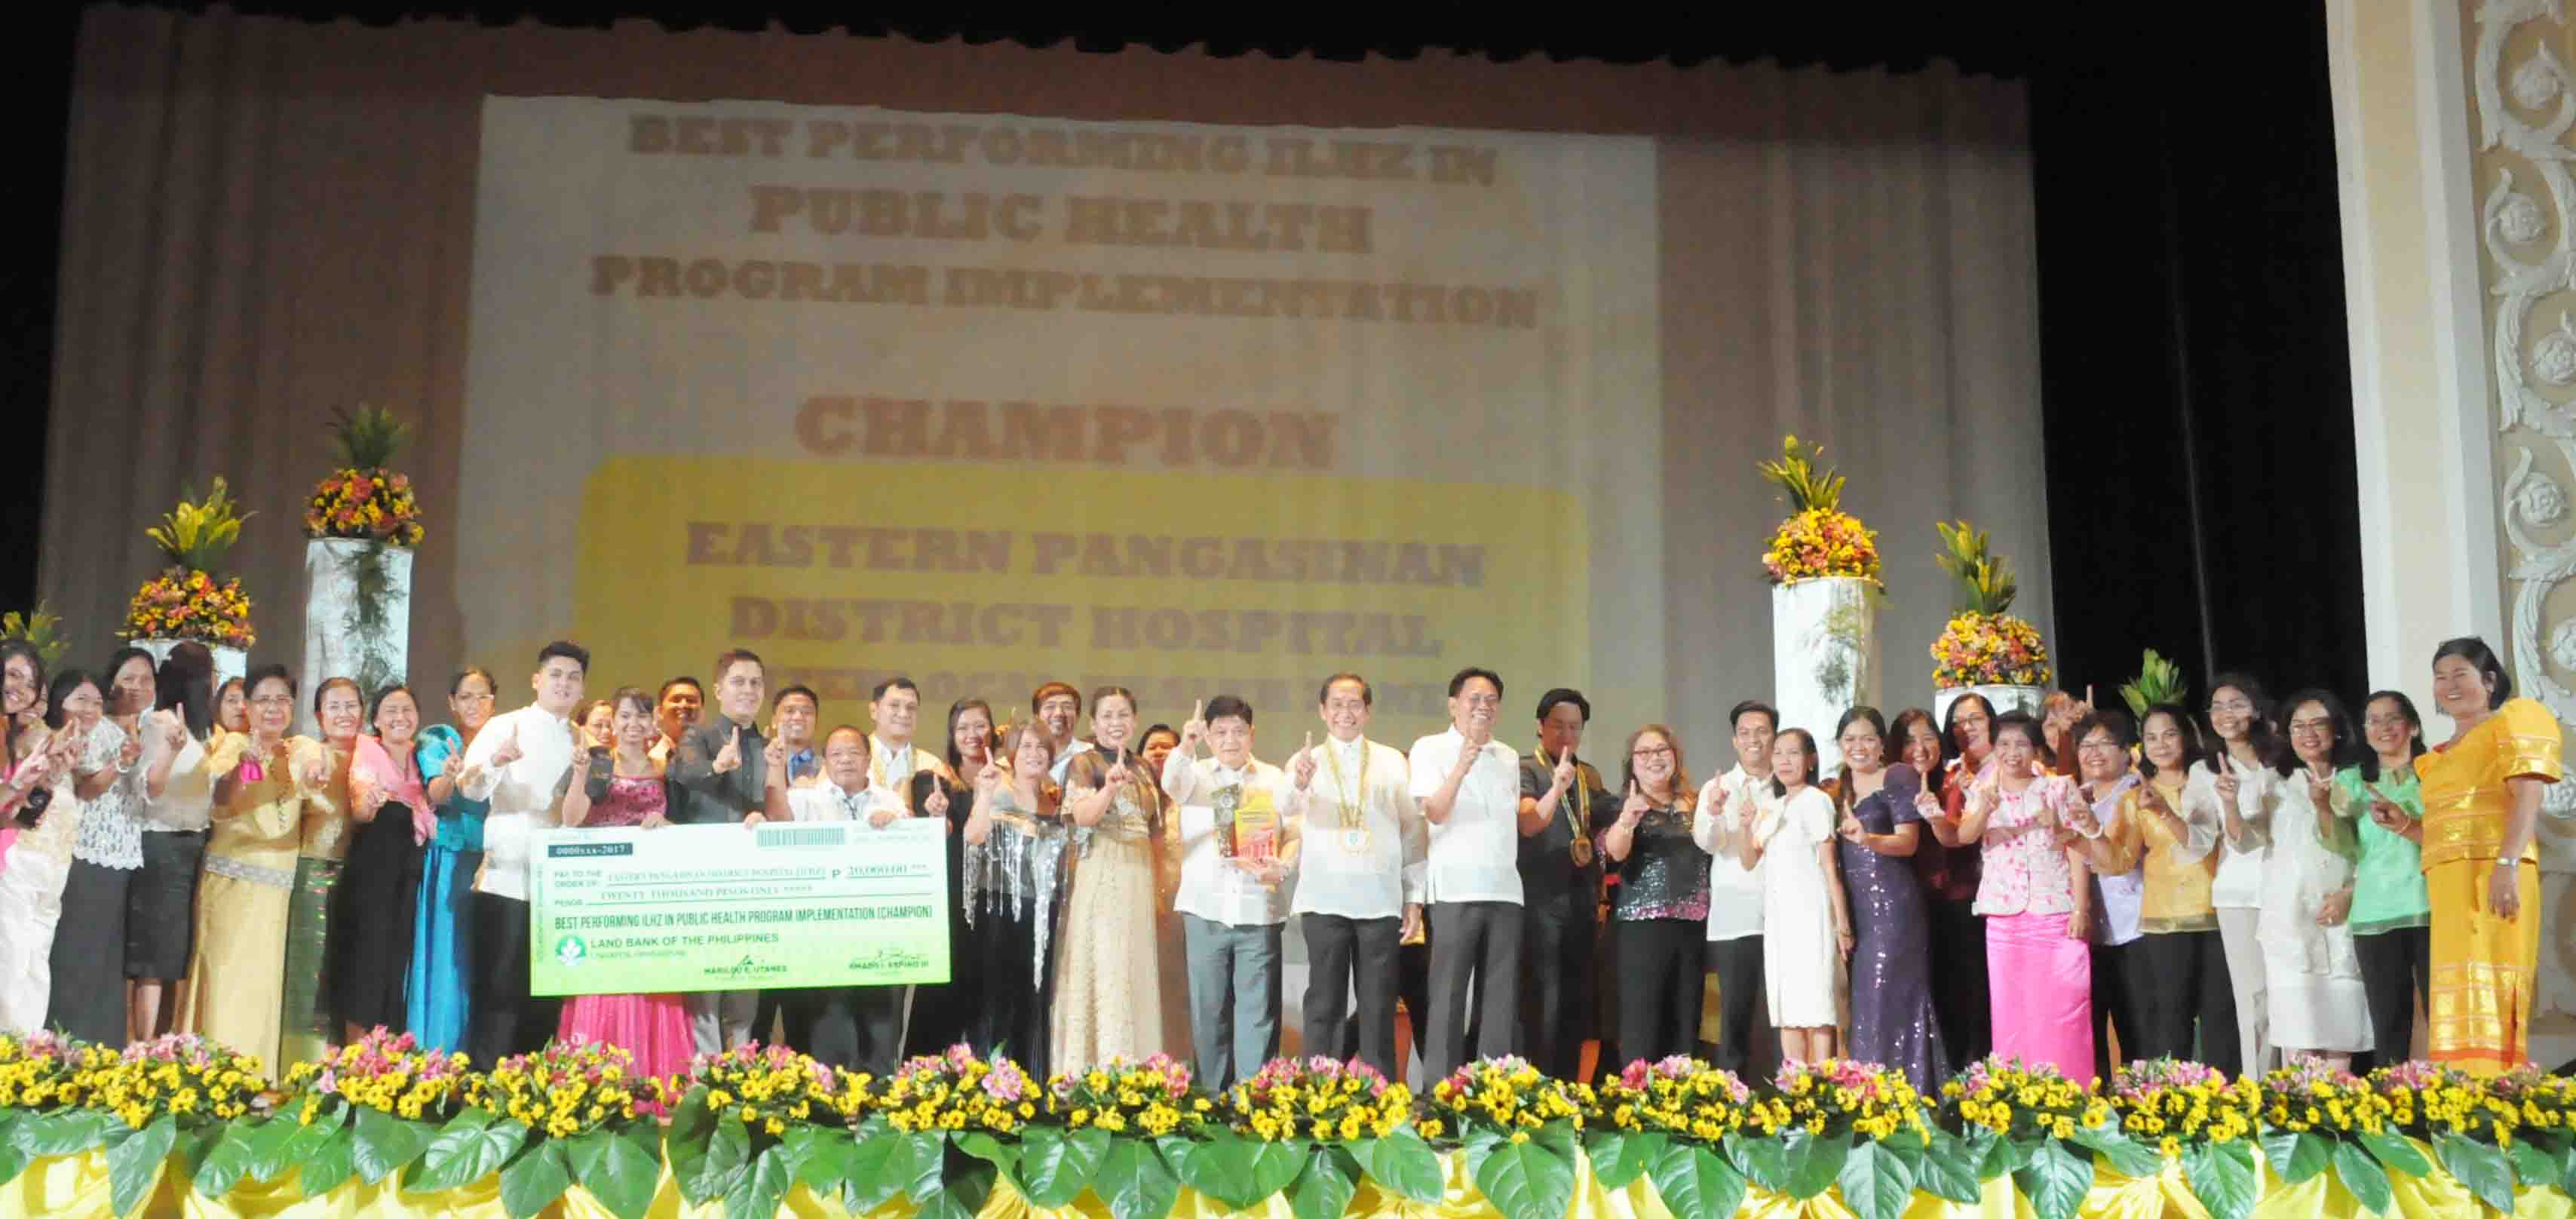 best performing ILHZ in public health